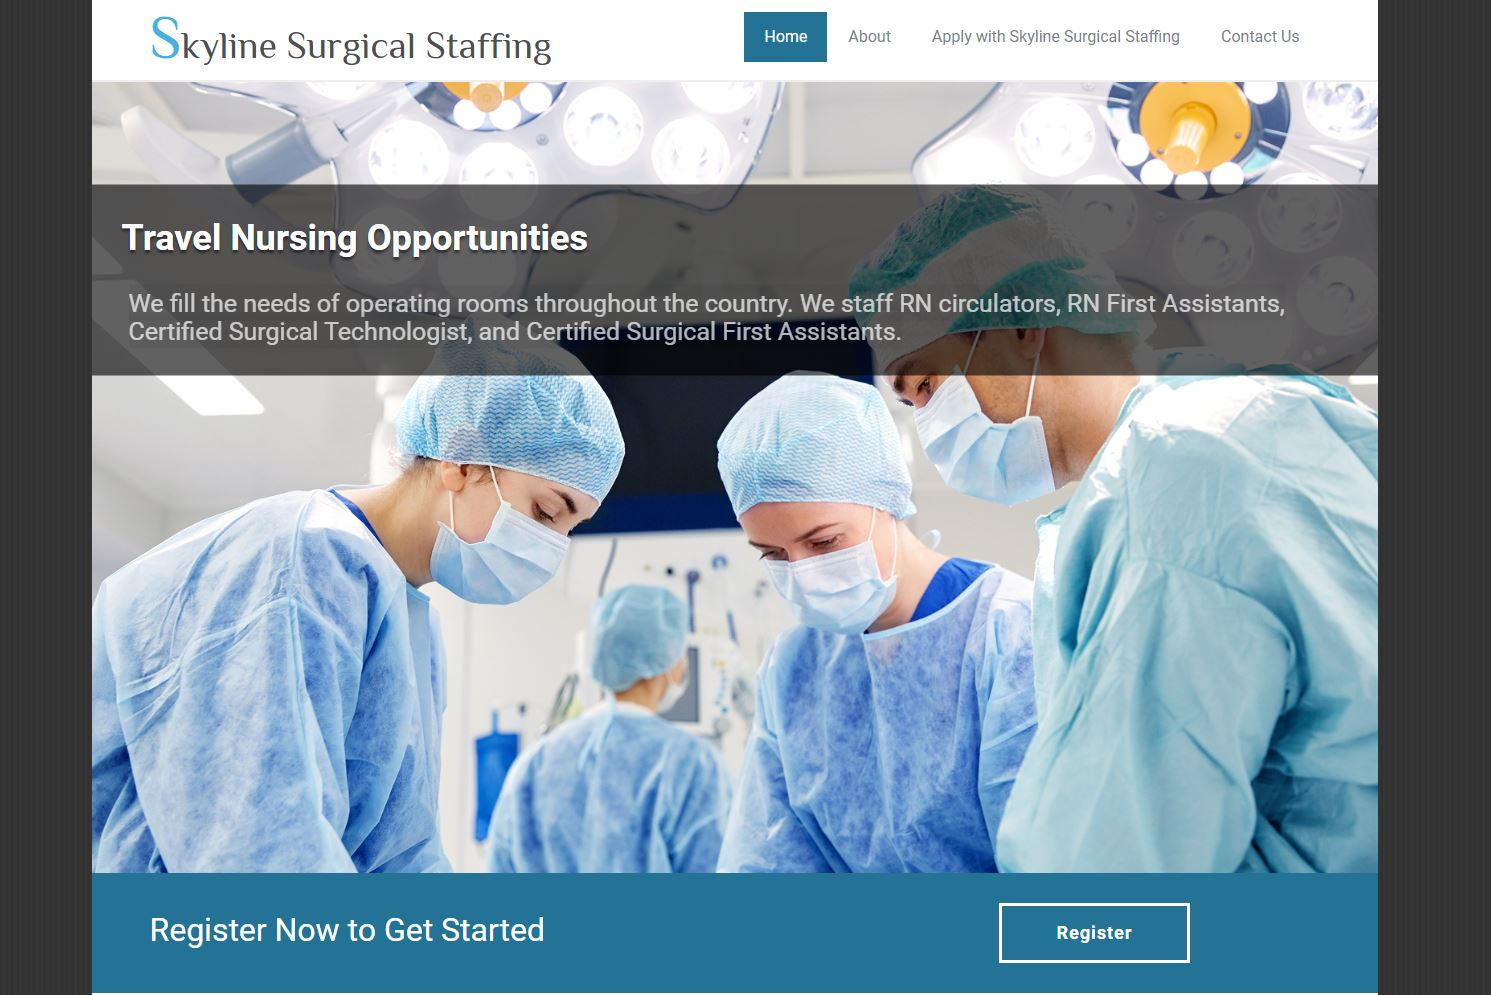 Skyline Surgical Staffing